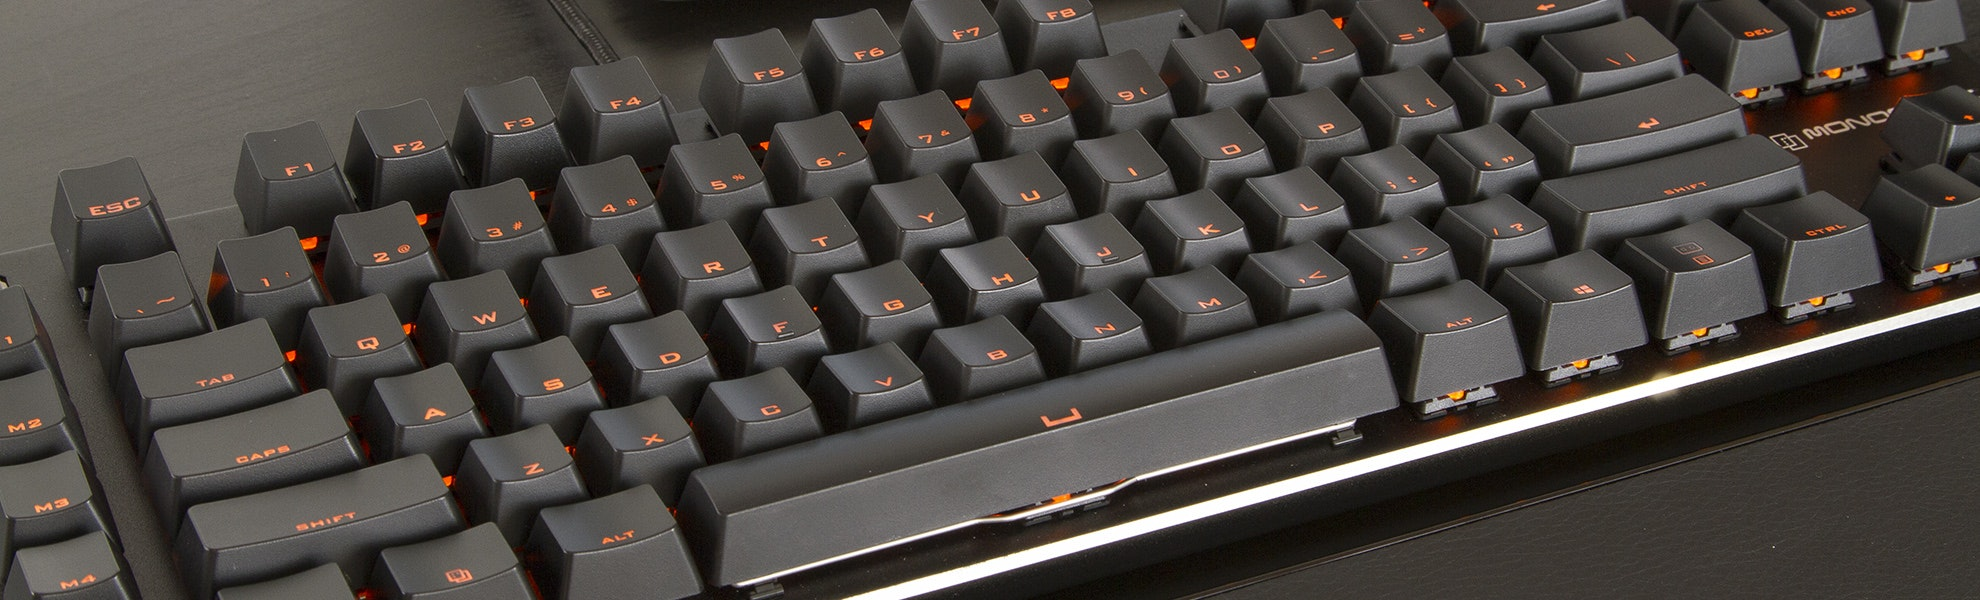 Monoprice Mechanical Macro Keyboard